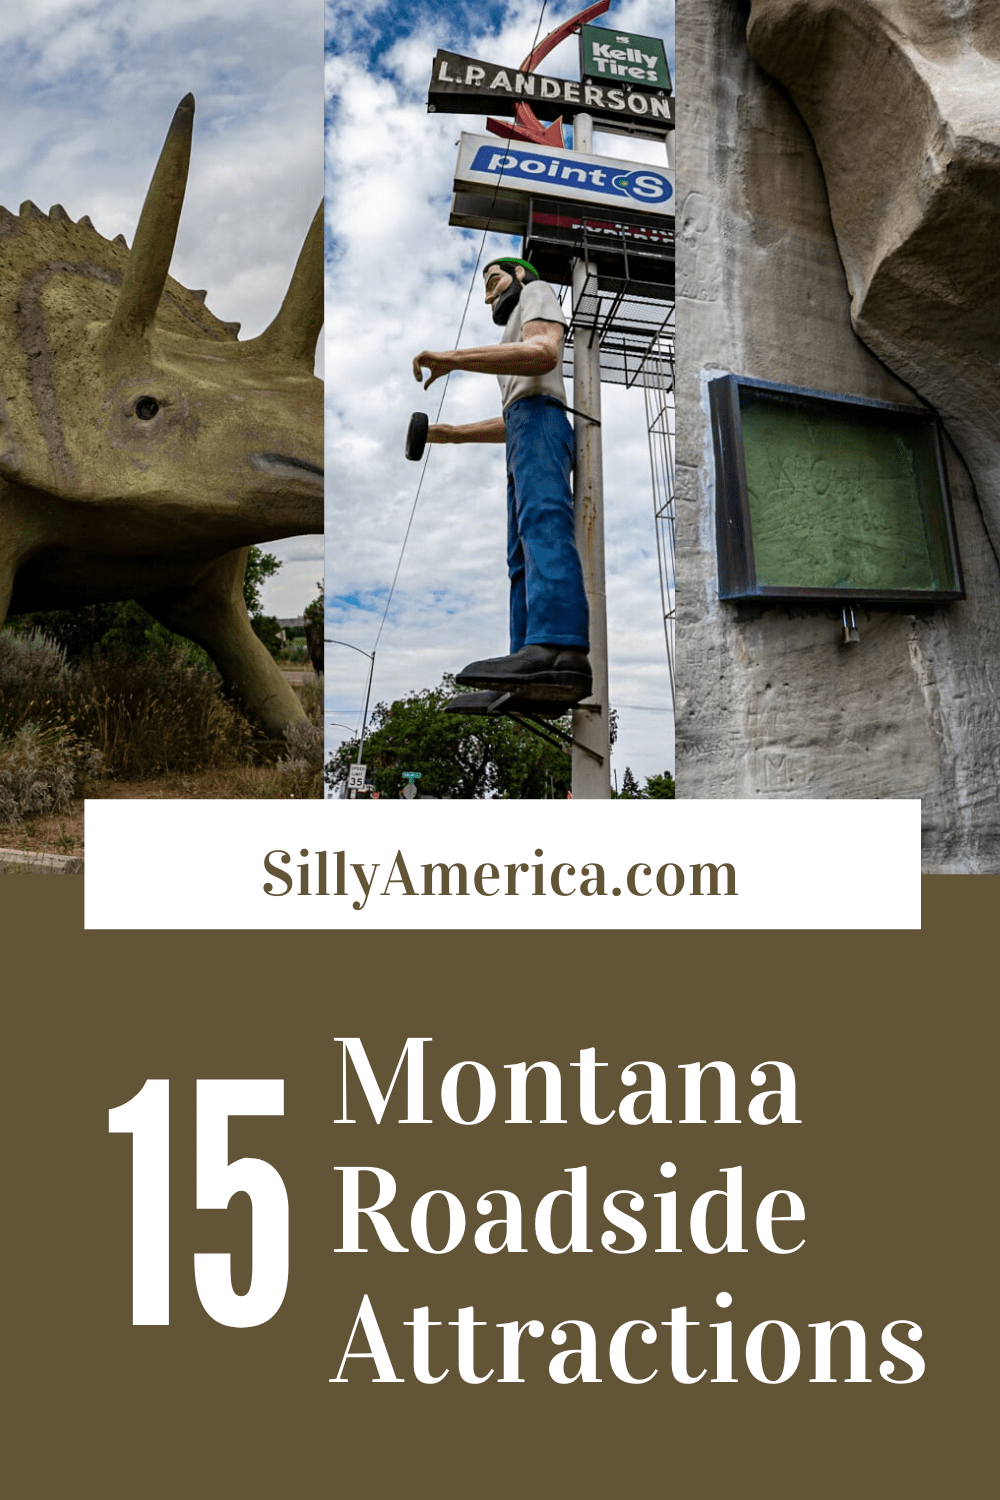 The best Montana roadside attractions to visit on a Montana road trip. Add these roadside oddities to your travel bucket list, itinerary, or route map! #MontanaRoadsideAttractions #MontanaRoadsideAttraction #RoadsideAttractions #RoadsideAttraction #RoadTrip #MontanaRoadTrip #MontanaRoadTripMap #MontanaRoadTripItinerary #MontanaRoadTripBucketLists #MontanaBucketList #MontanaRoadTripIdeas #MontanaWinterRoadTrip #MontanaRoadTripWithKids #MontanaRoadWithKids